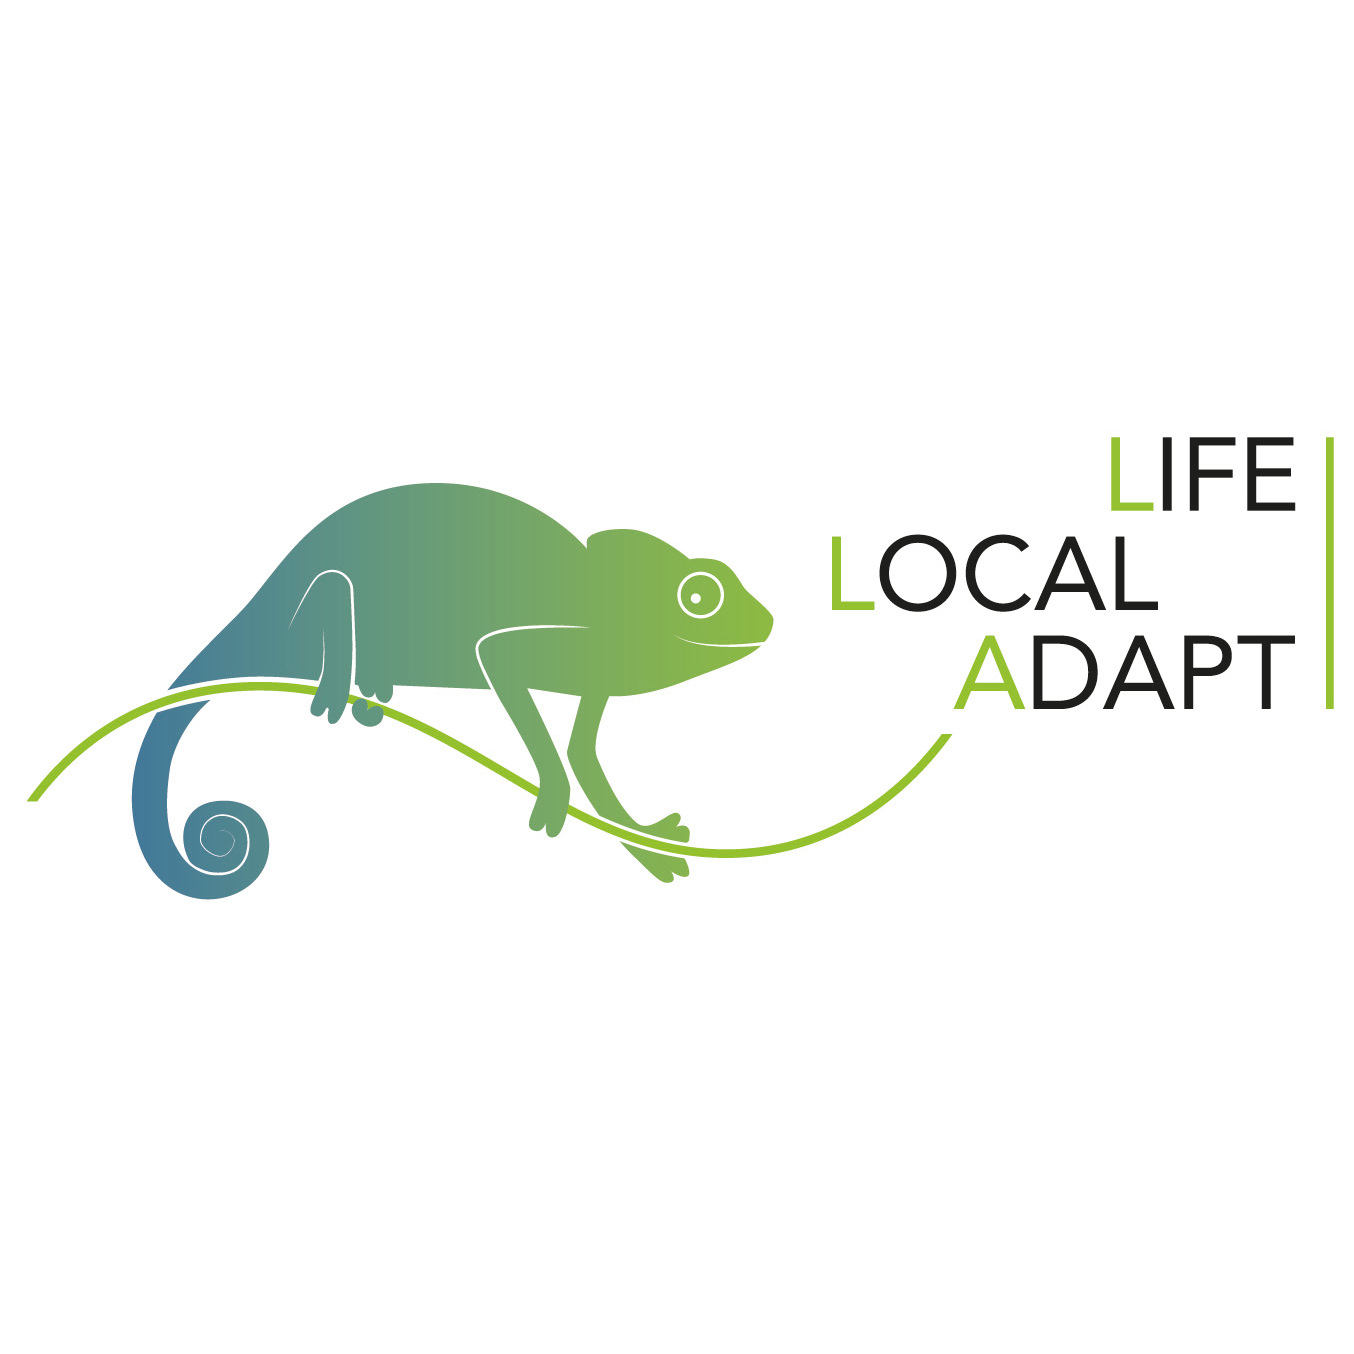 LIFE LOCAL ADAPT - Integration of climate change adaptation into the work of local authorities (LIFE15 CCA/DE/000133)